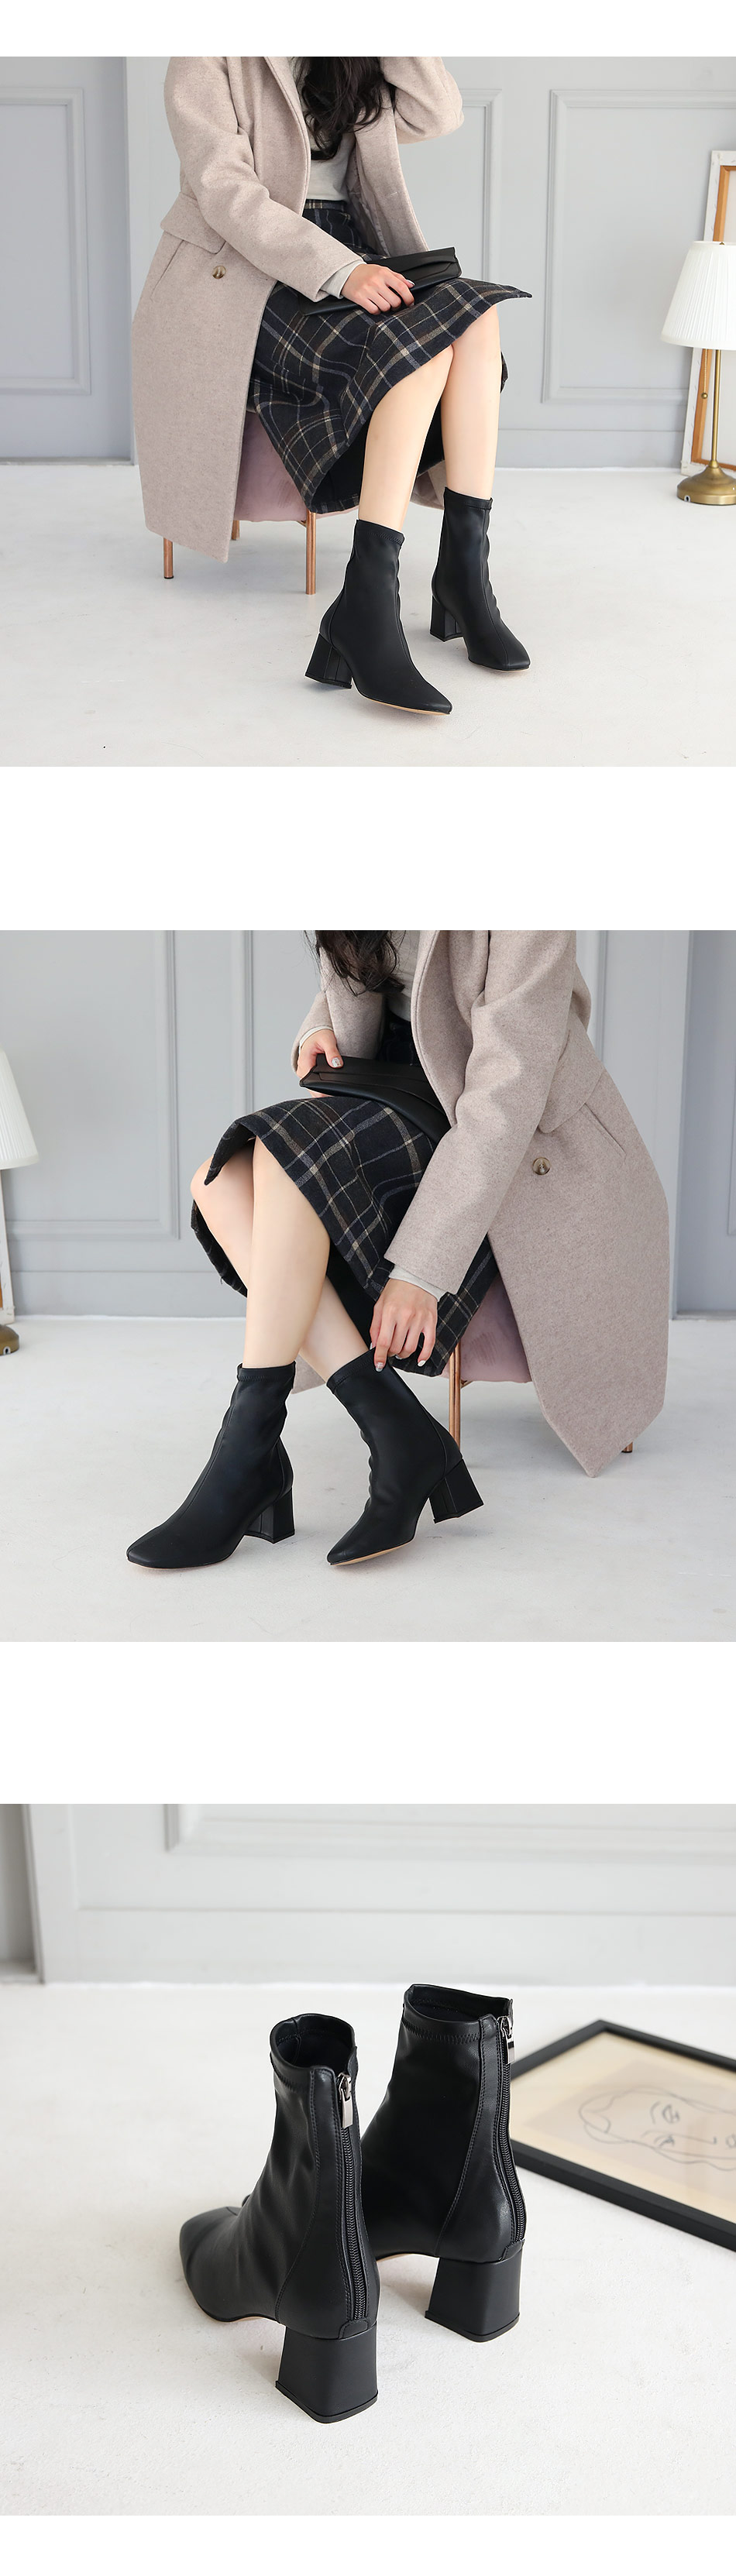 Northern Sox Ankle Boots 6cm